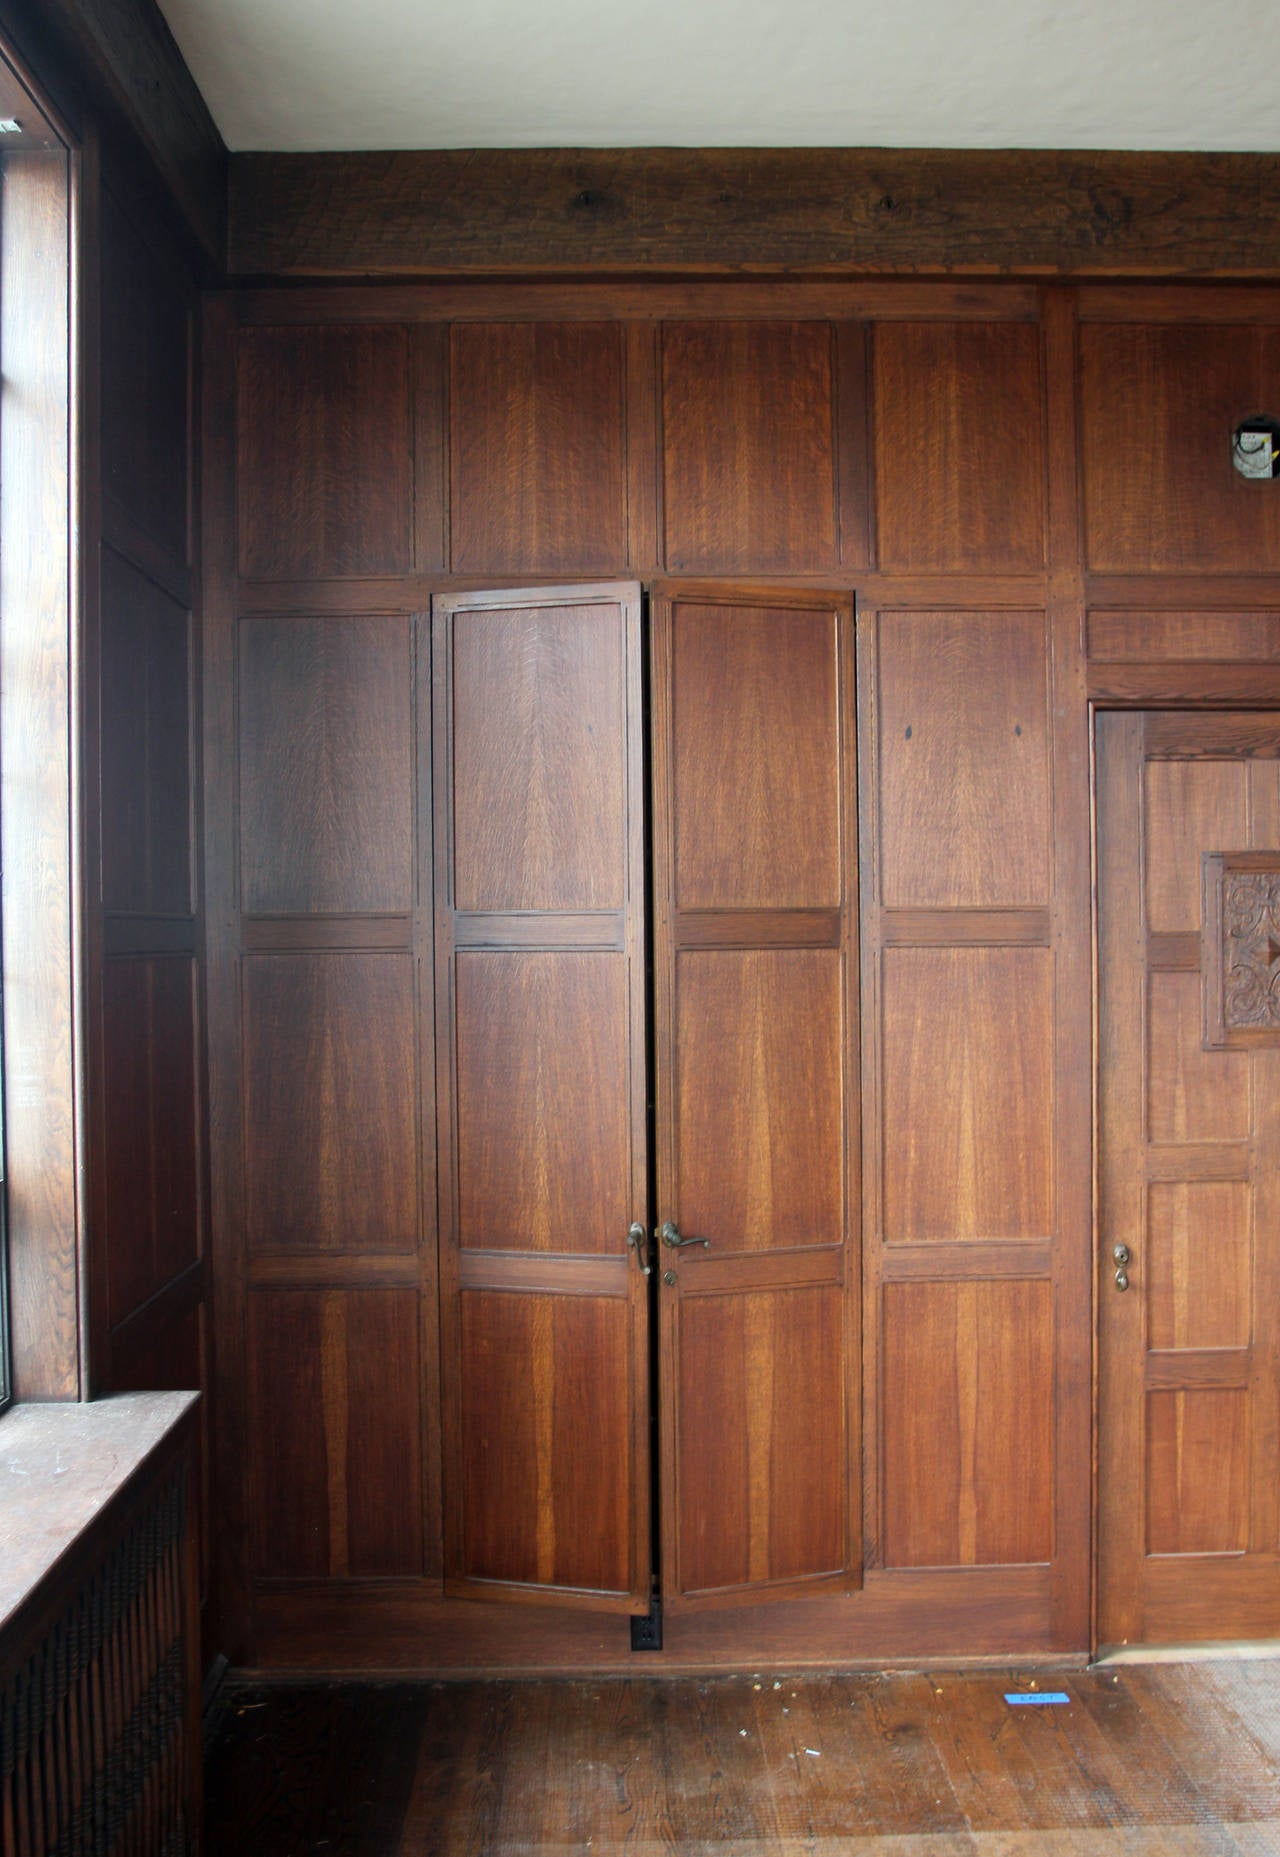 1905 solid english oak paneled room with matching door from two